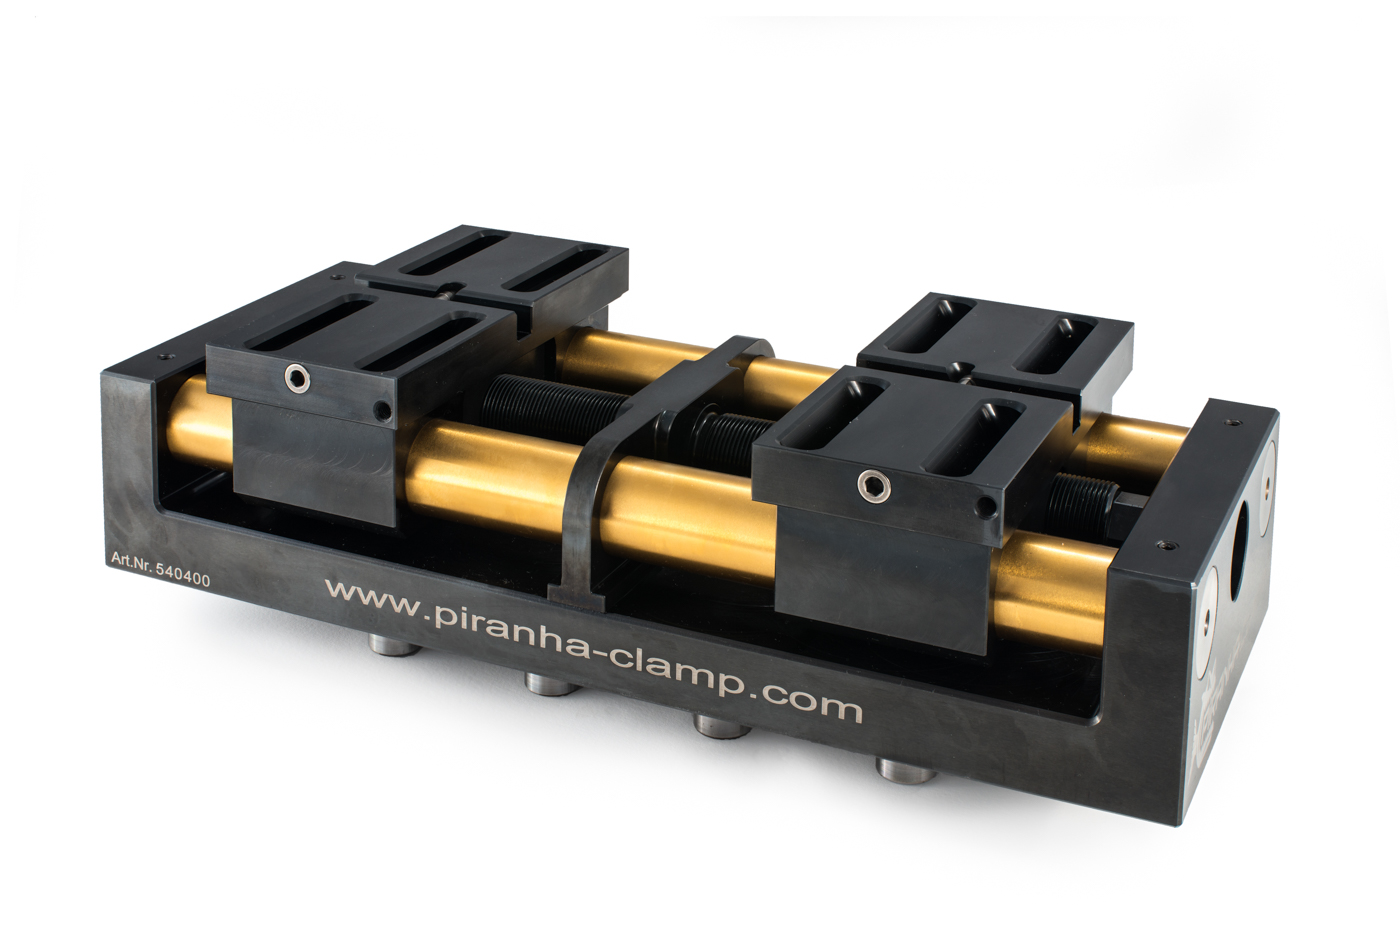 Piranha Clamp